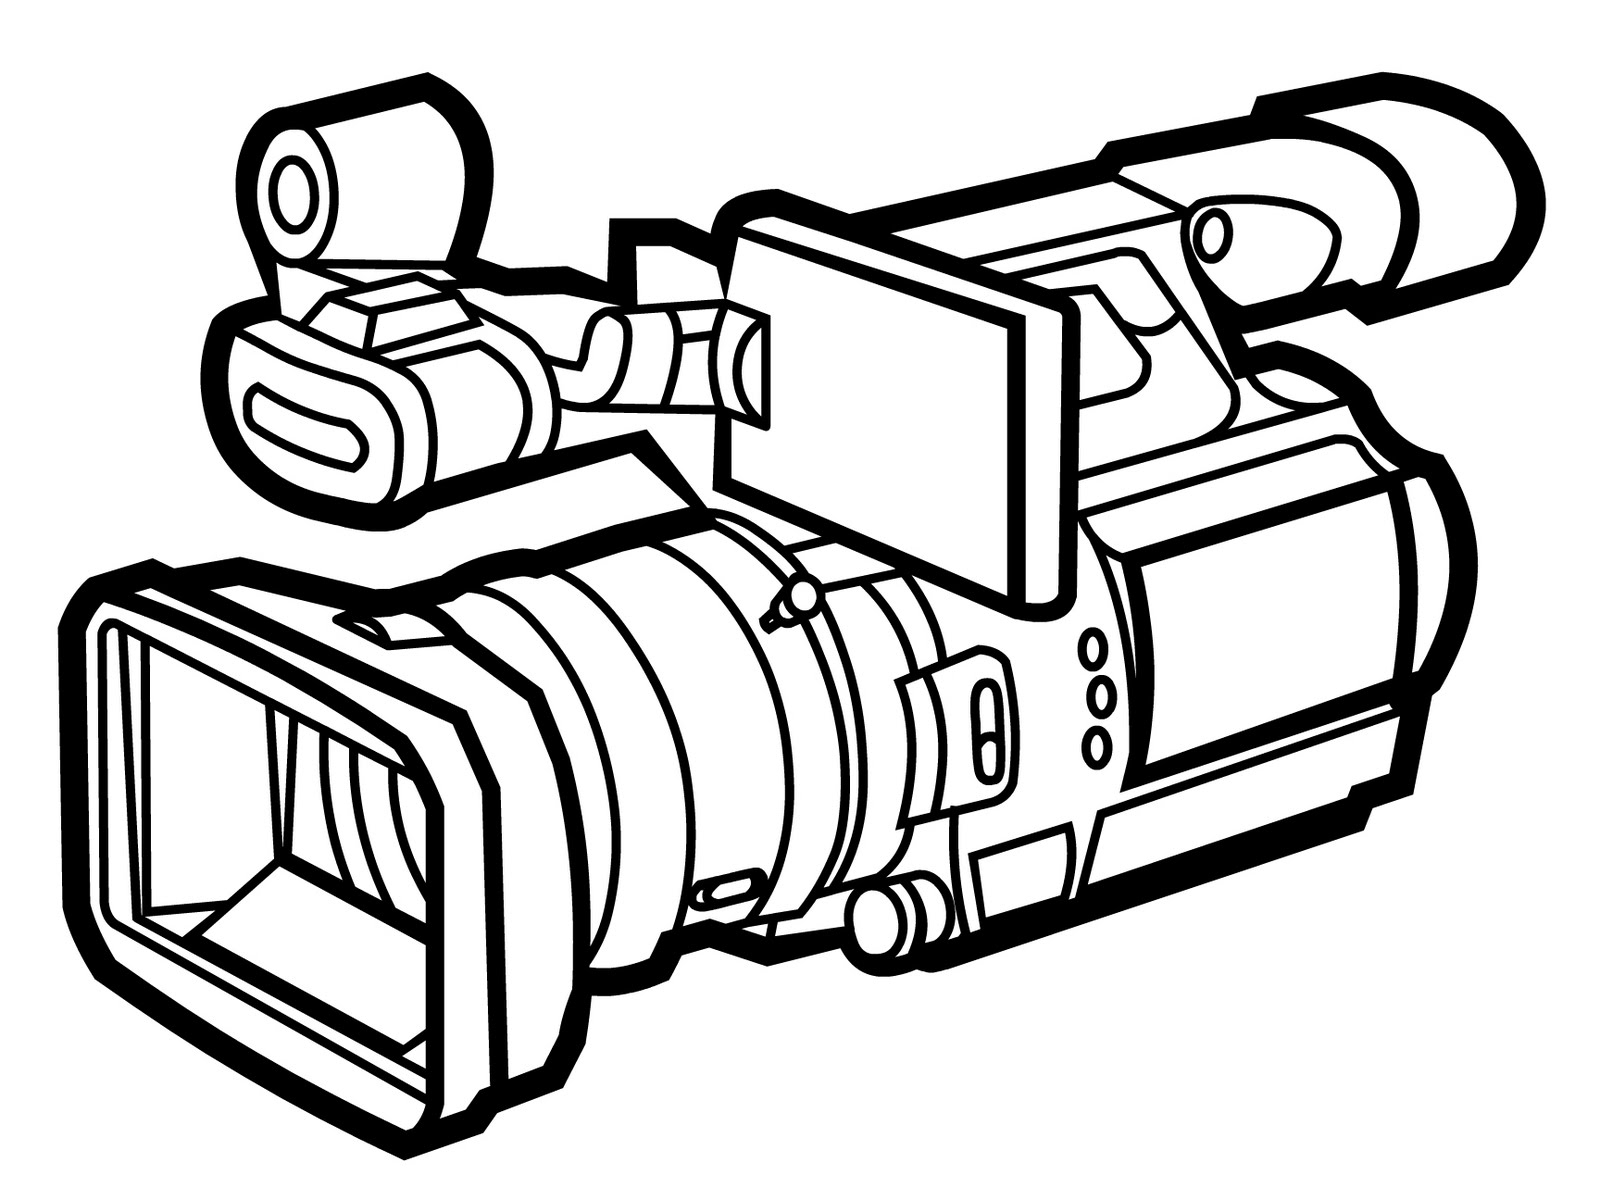 Video Camera Clipart Wallpapers Widescreen : Other Wallpaper.